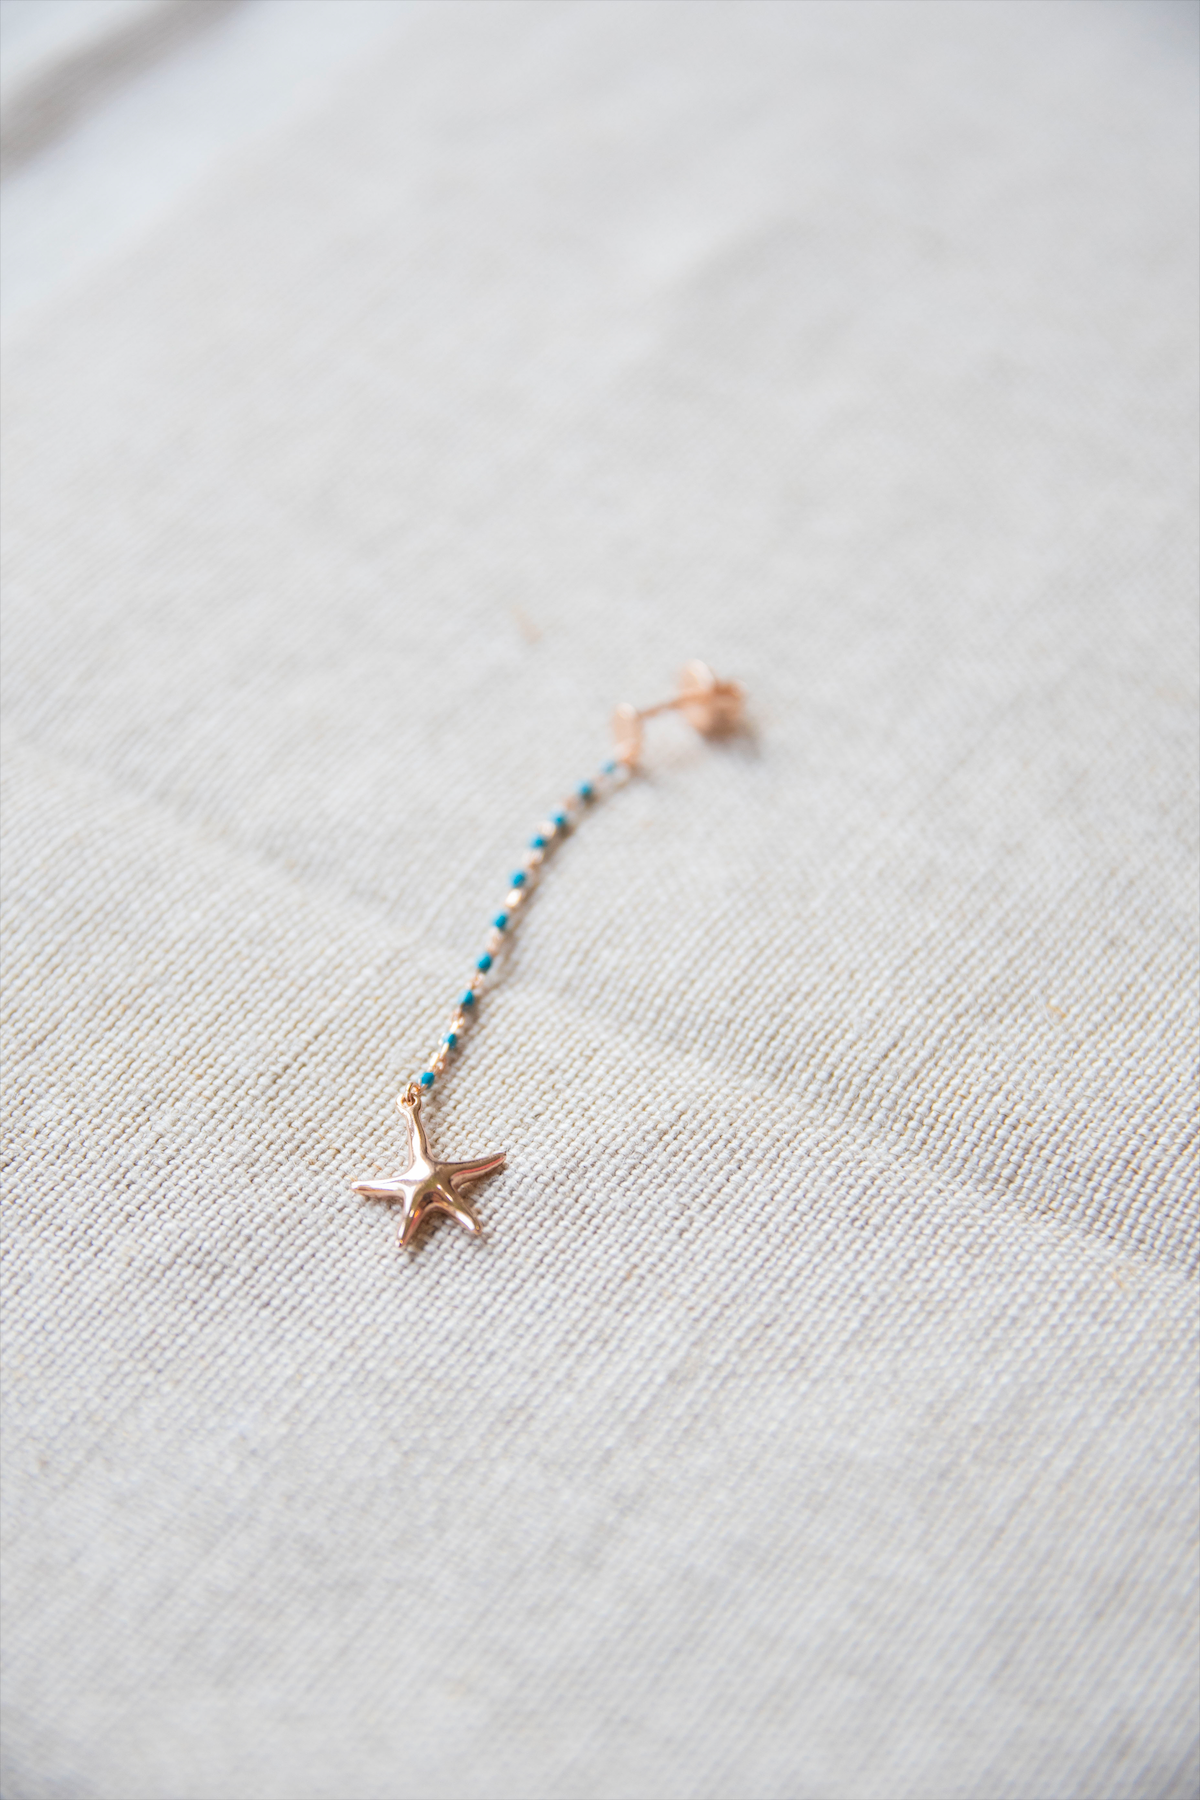 Rose Gold Sea Inspired Single Earring by Shiva Designs Bespoke